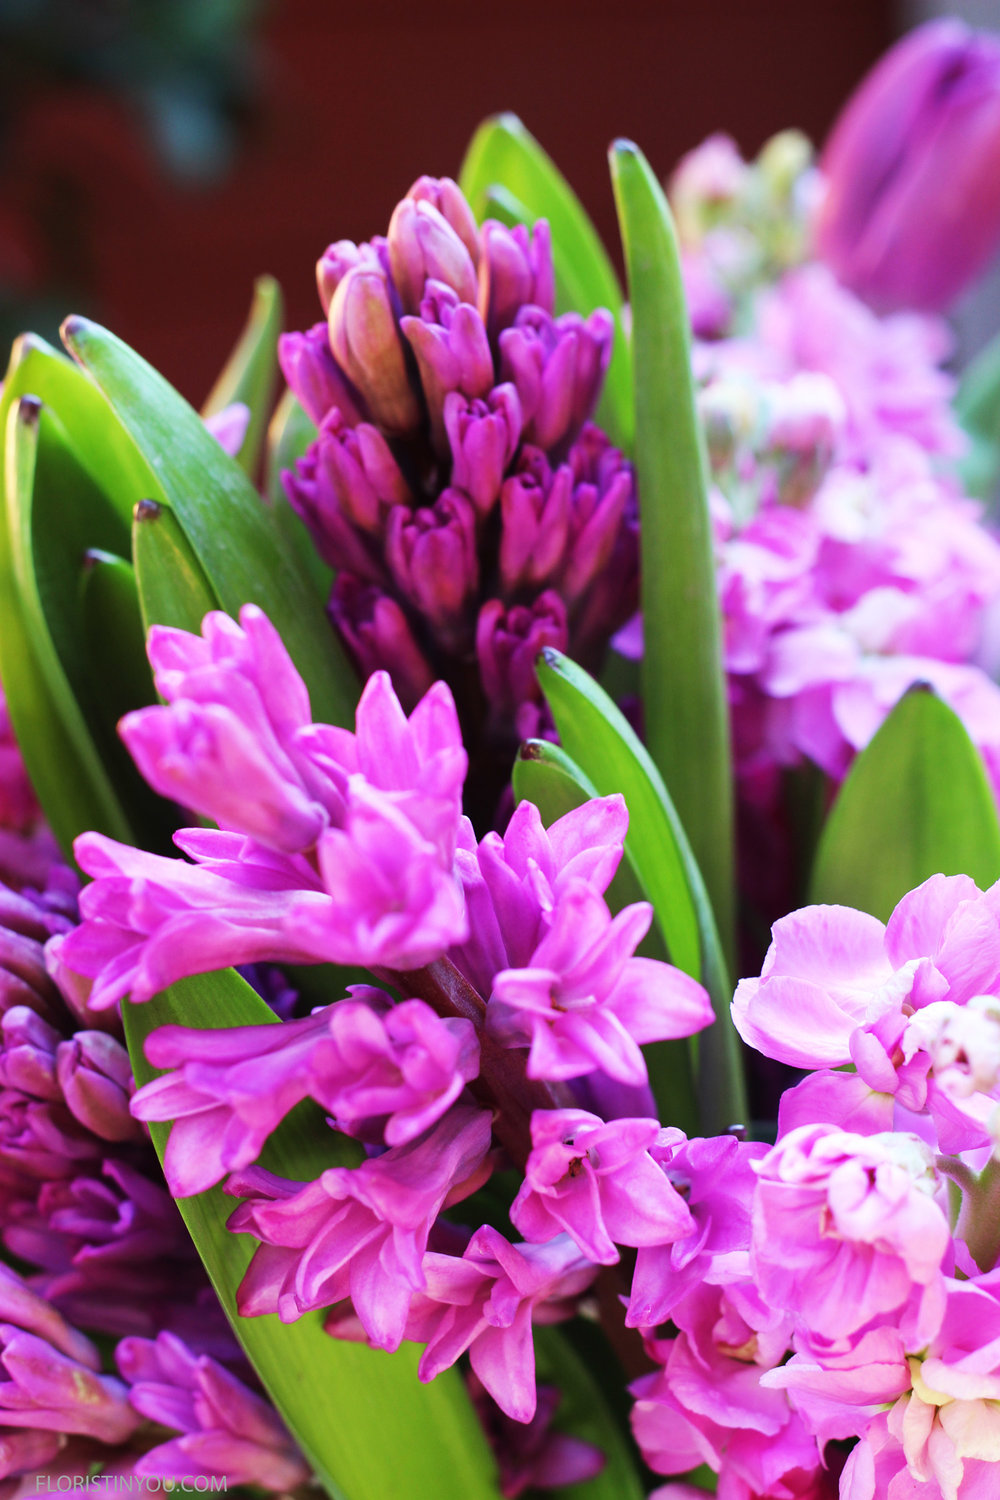 Notice the tiny flowers of the hyacinth.